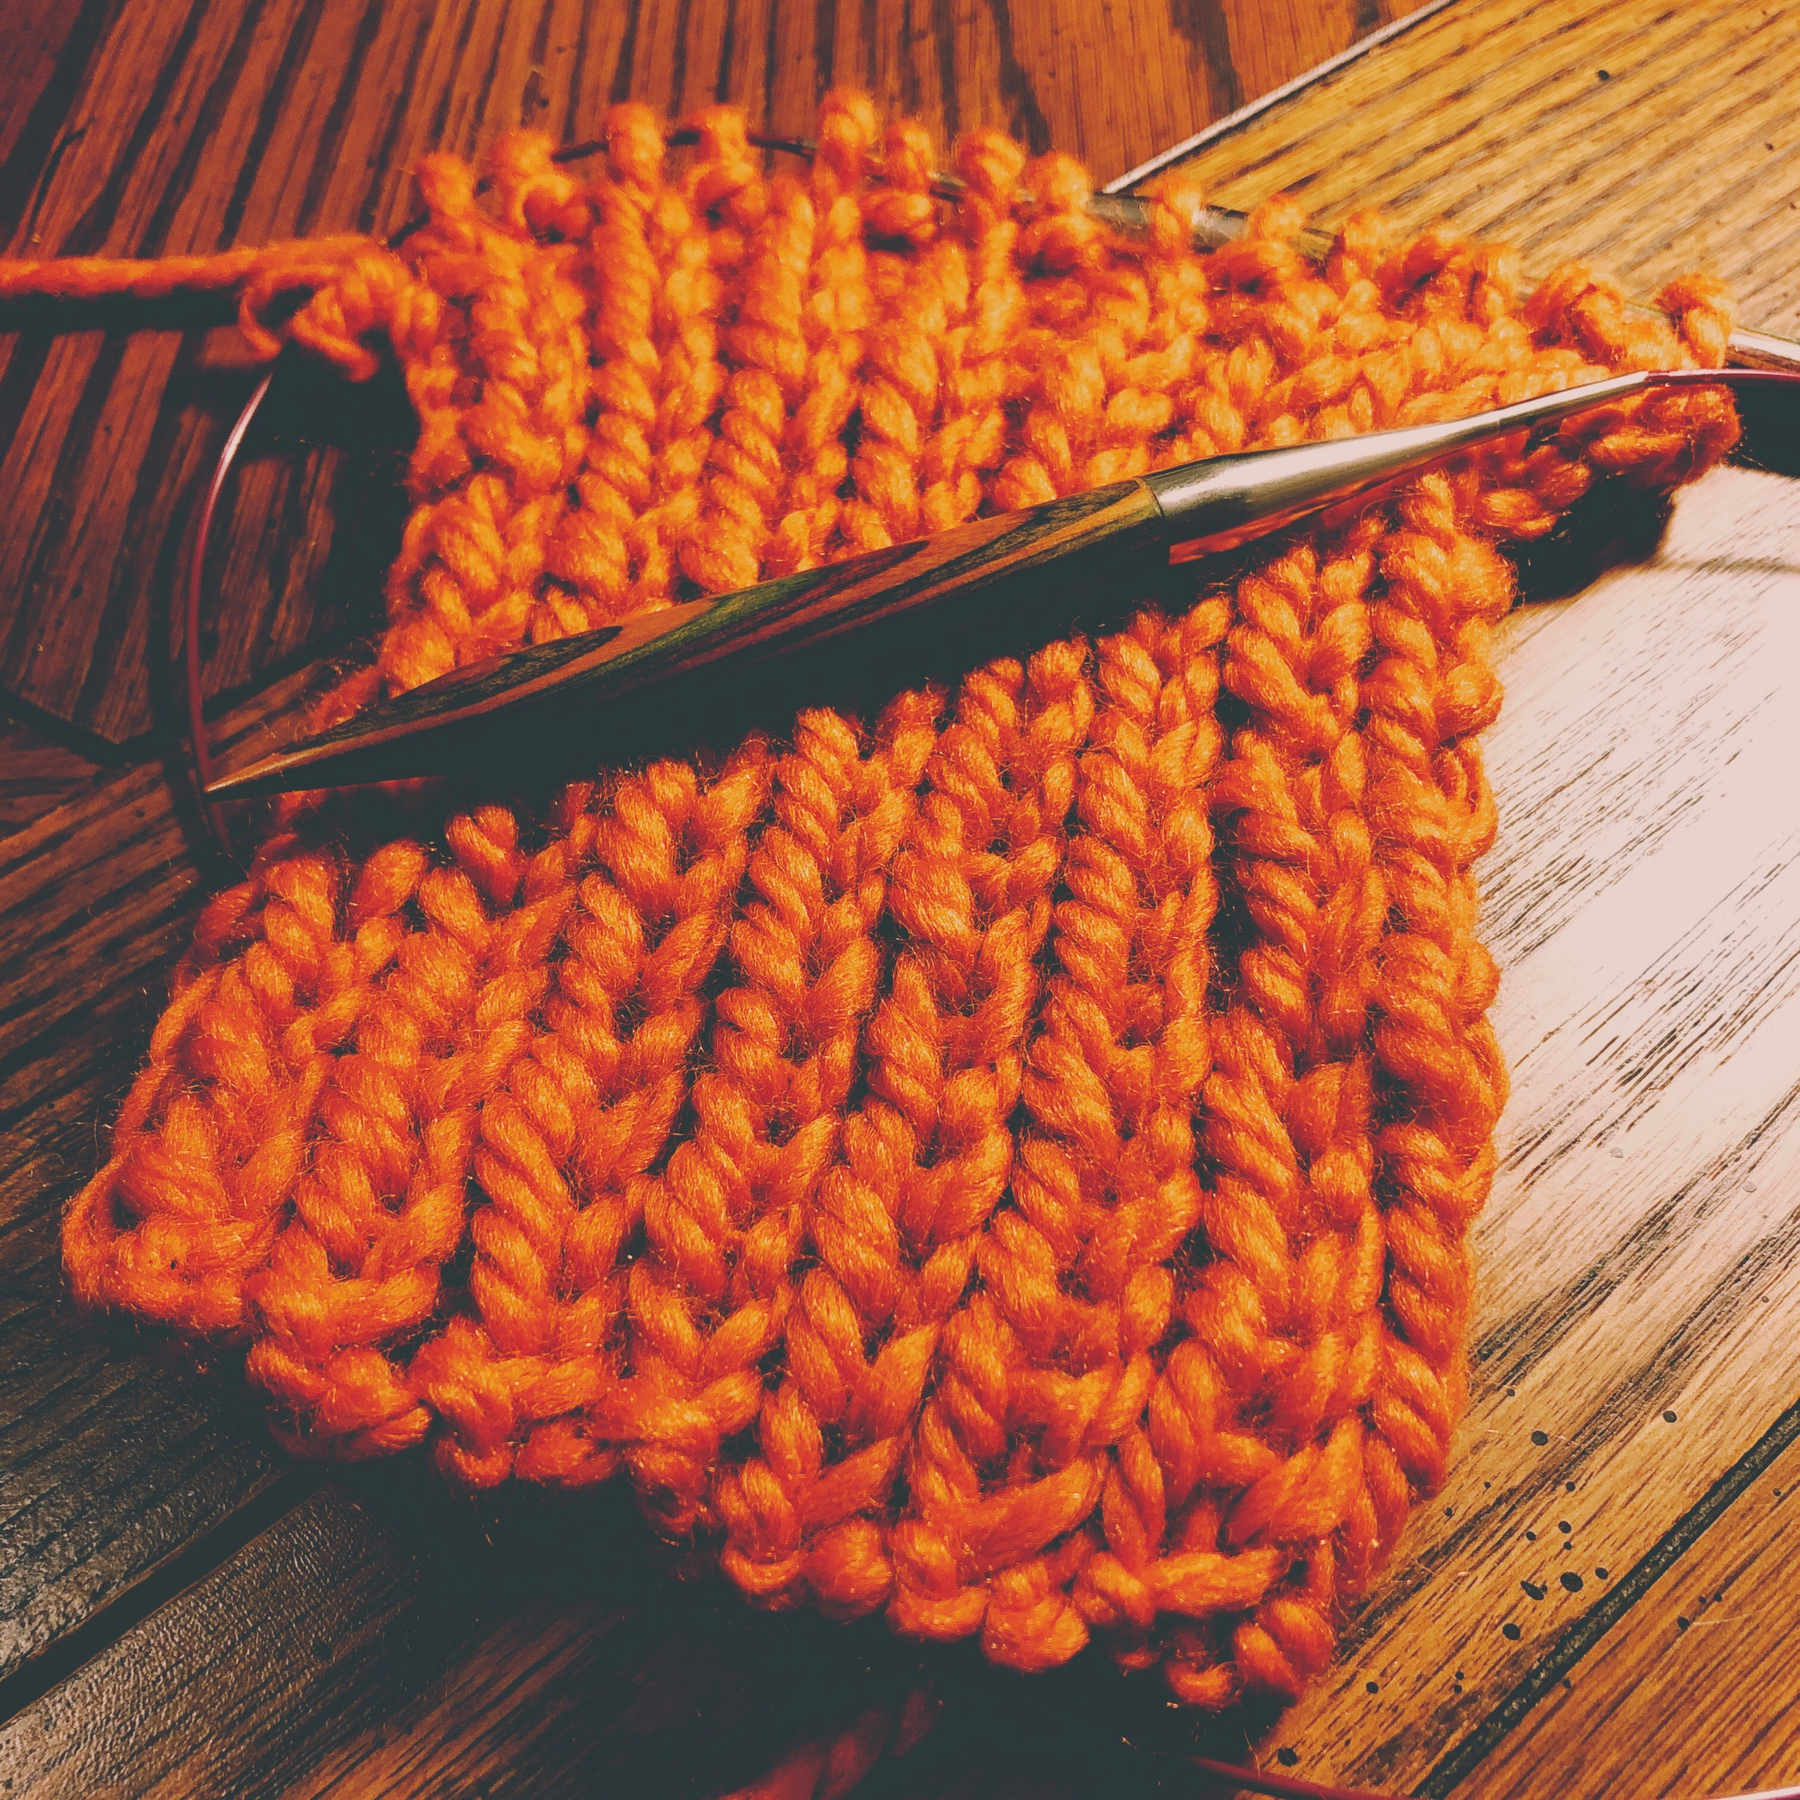 knitting project in progress, an orange rib knit scarf